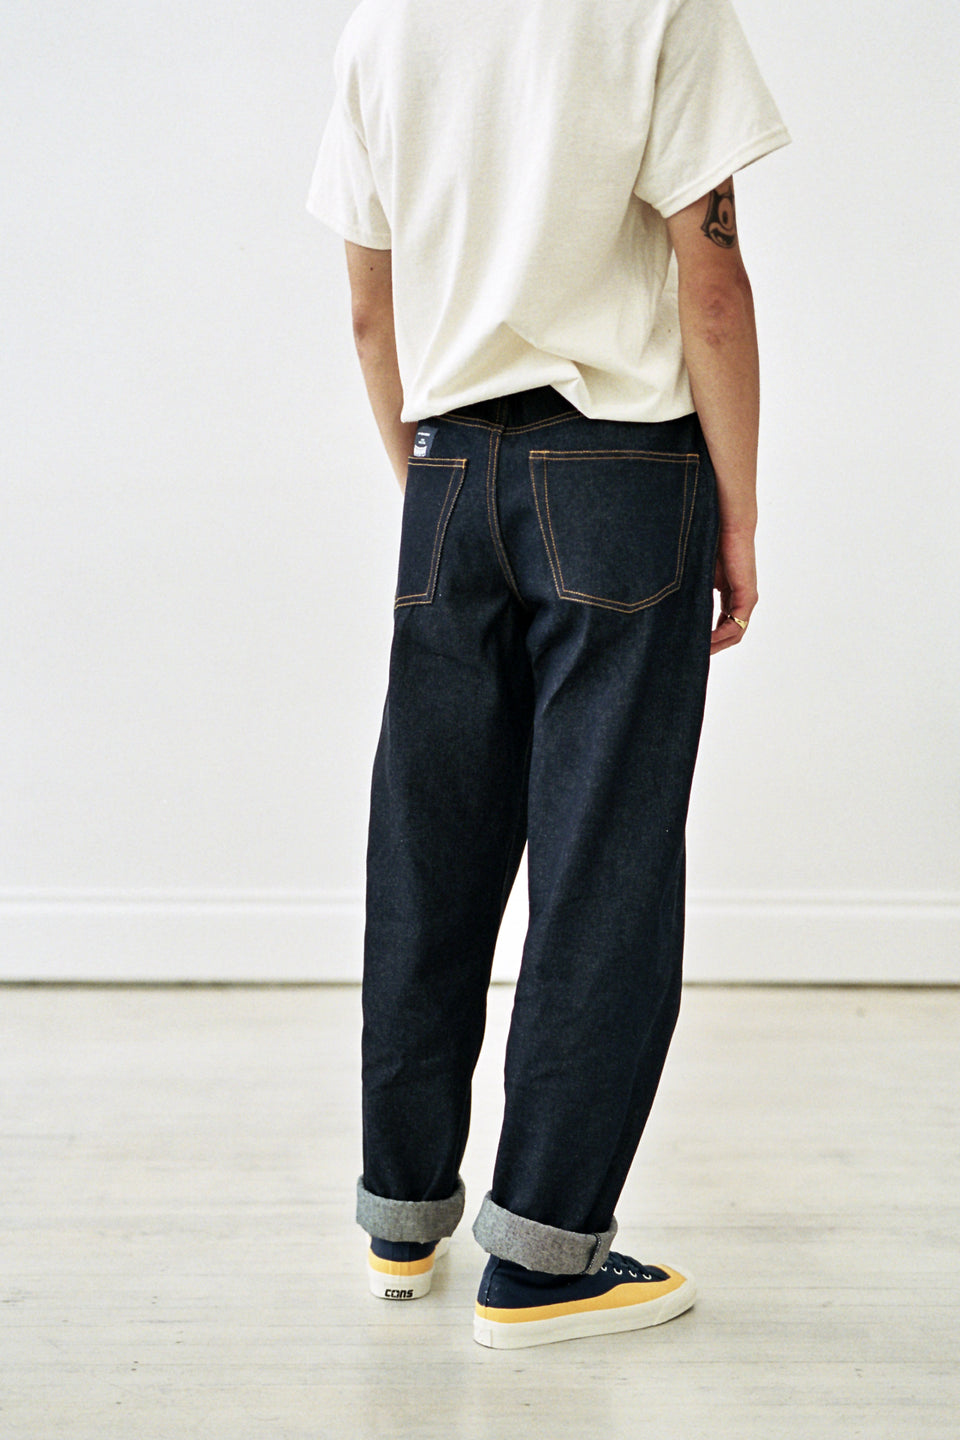 Pop Trading Company AW20 FW20 DRS Denim Raw Calculus Victoria BC Canada